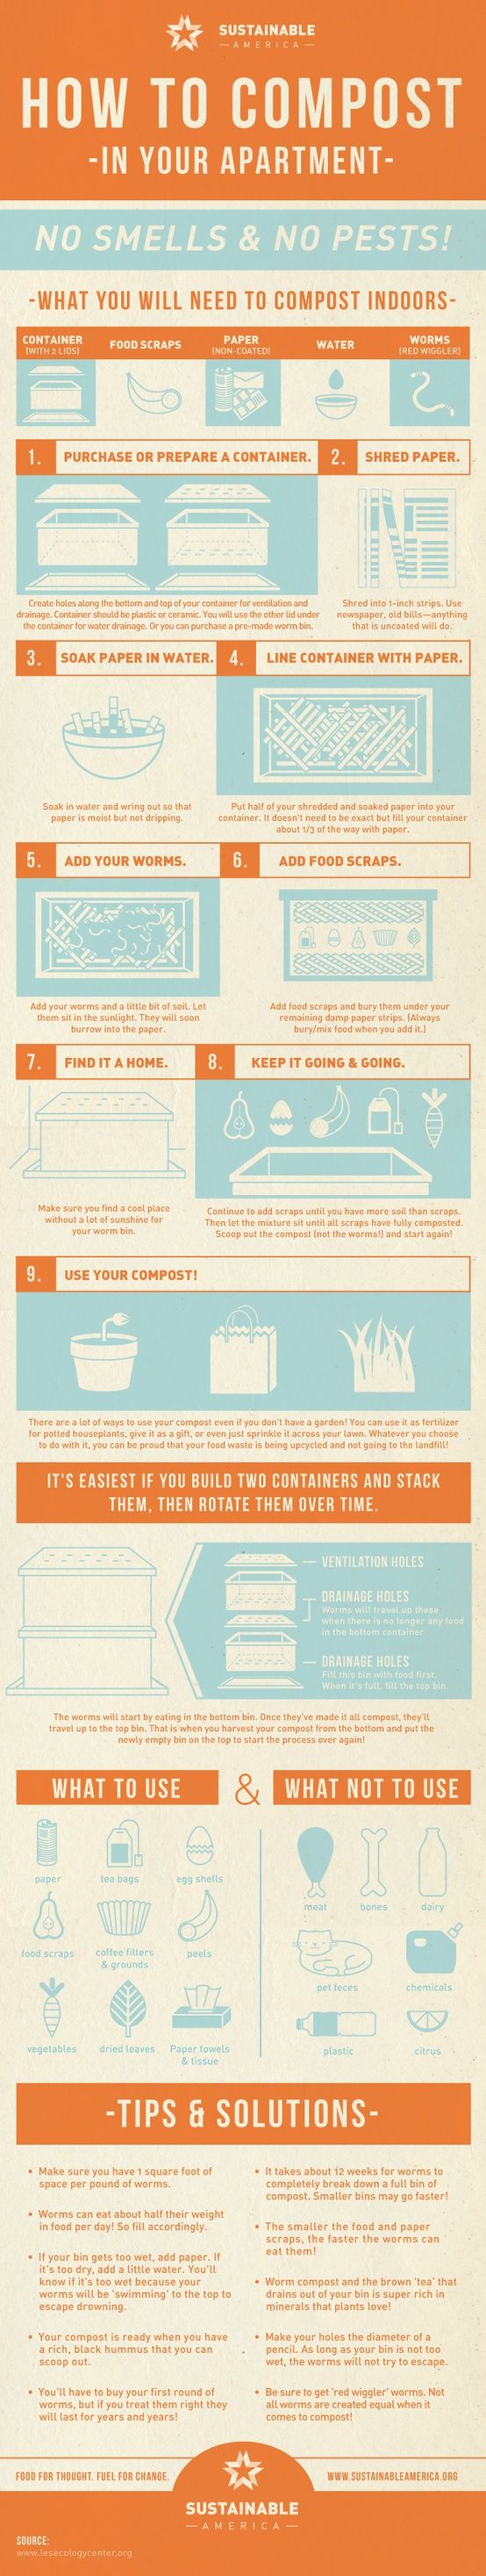 """How to Compost in Your Apartment by thejoyfulorganizer #Composting #Apartment #Green"" this is intriguing, but I'm not sure i trust the claim that it won't attract pests. I've lived through two mouse infestations and have no desire to do so again."